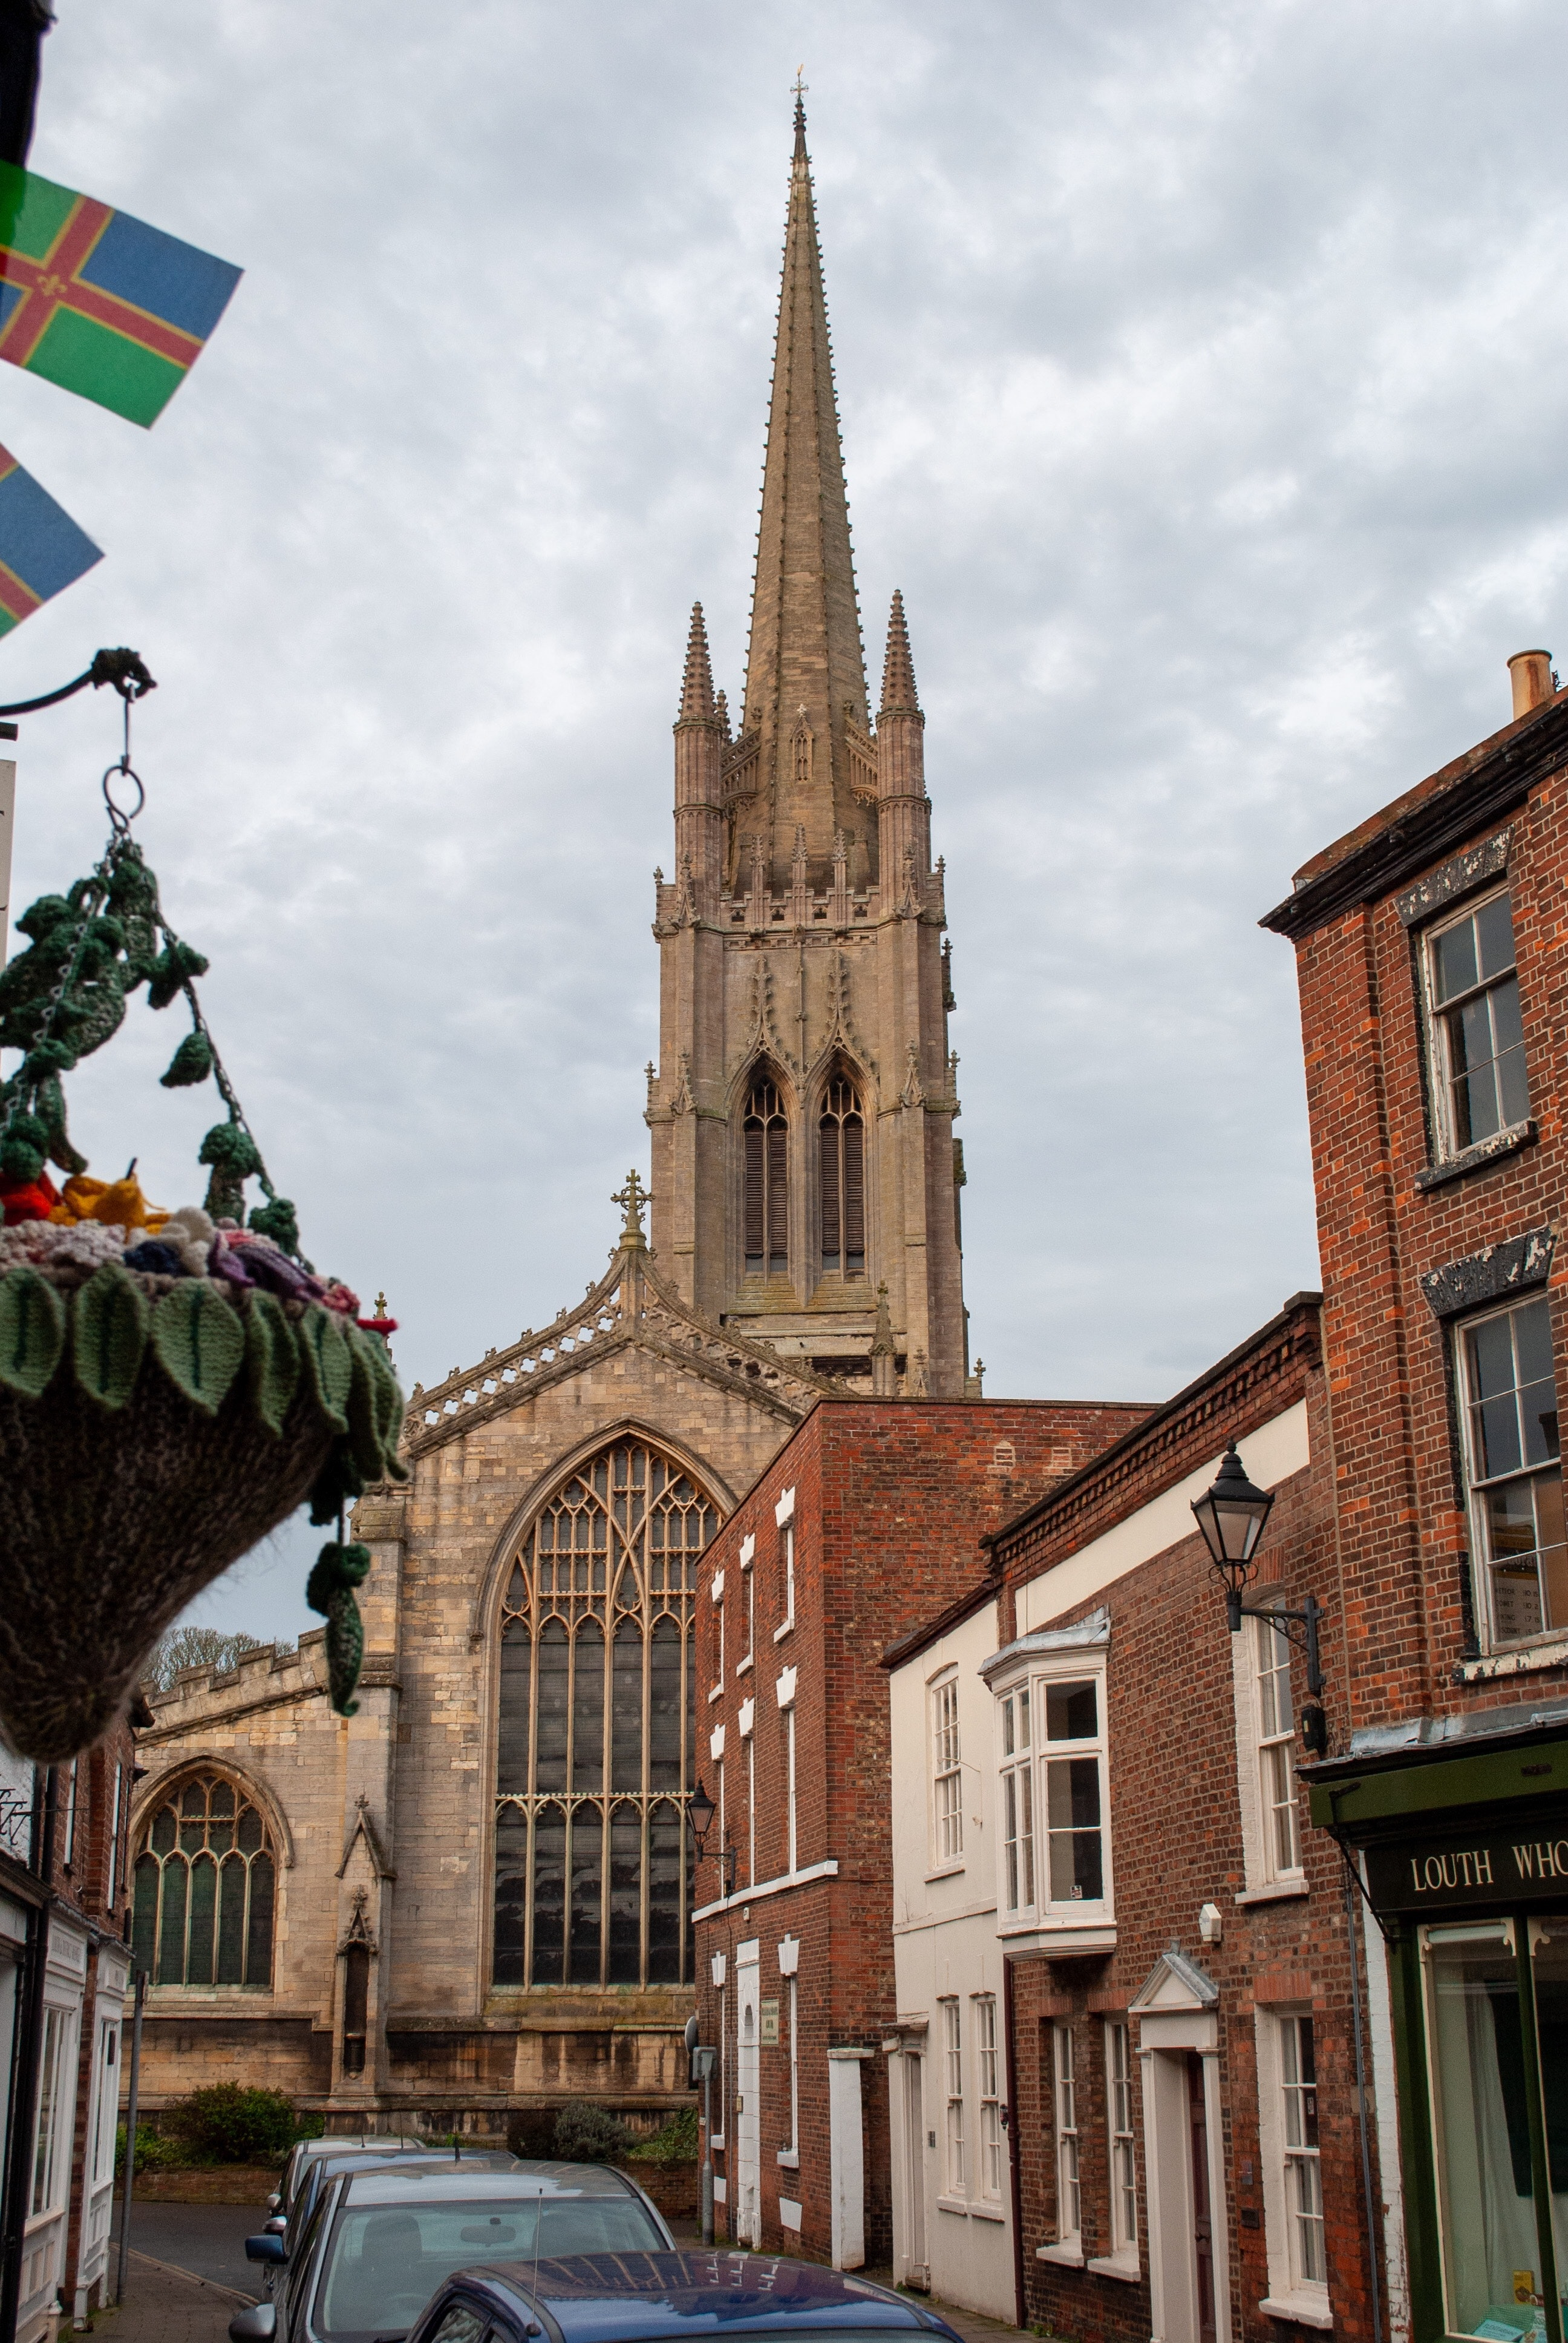 church-england-lincolnshire-church-tower-3659984